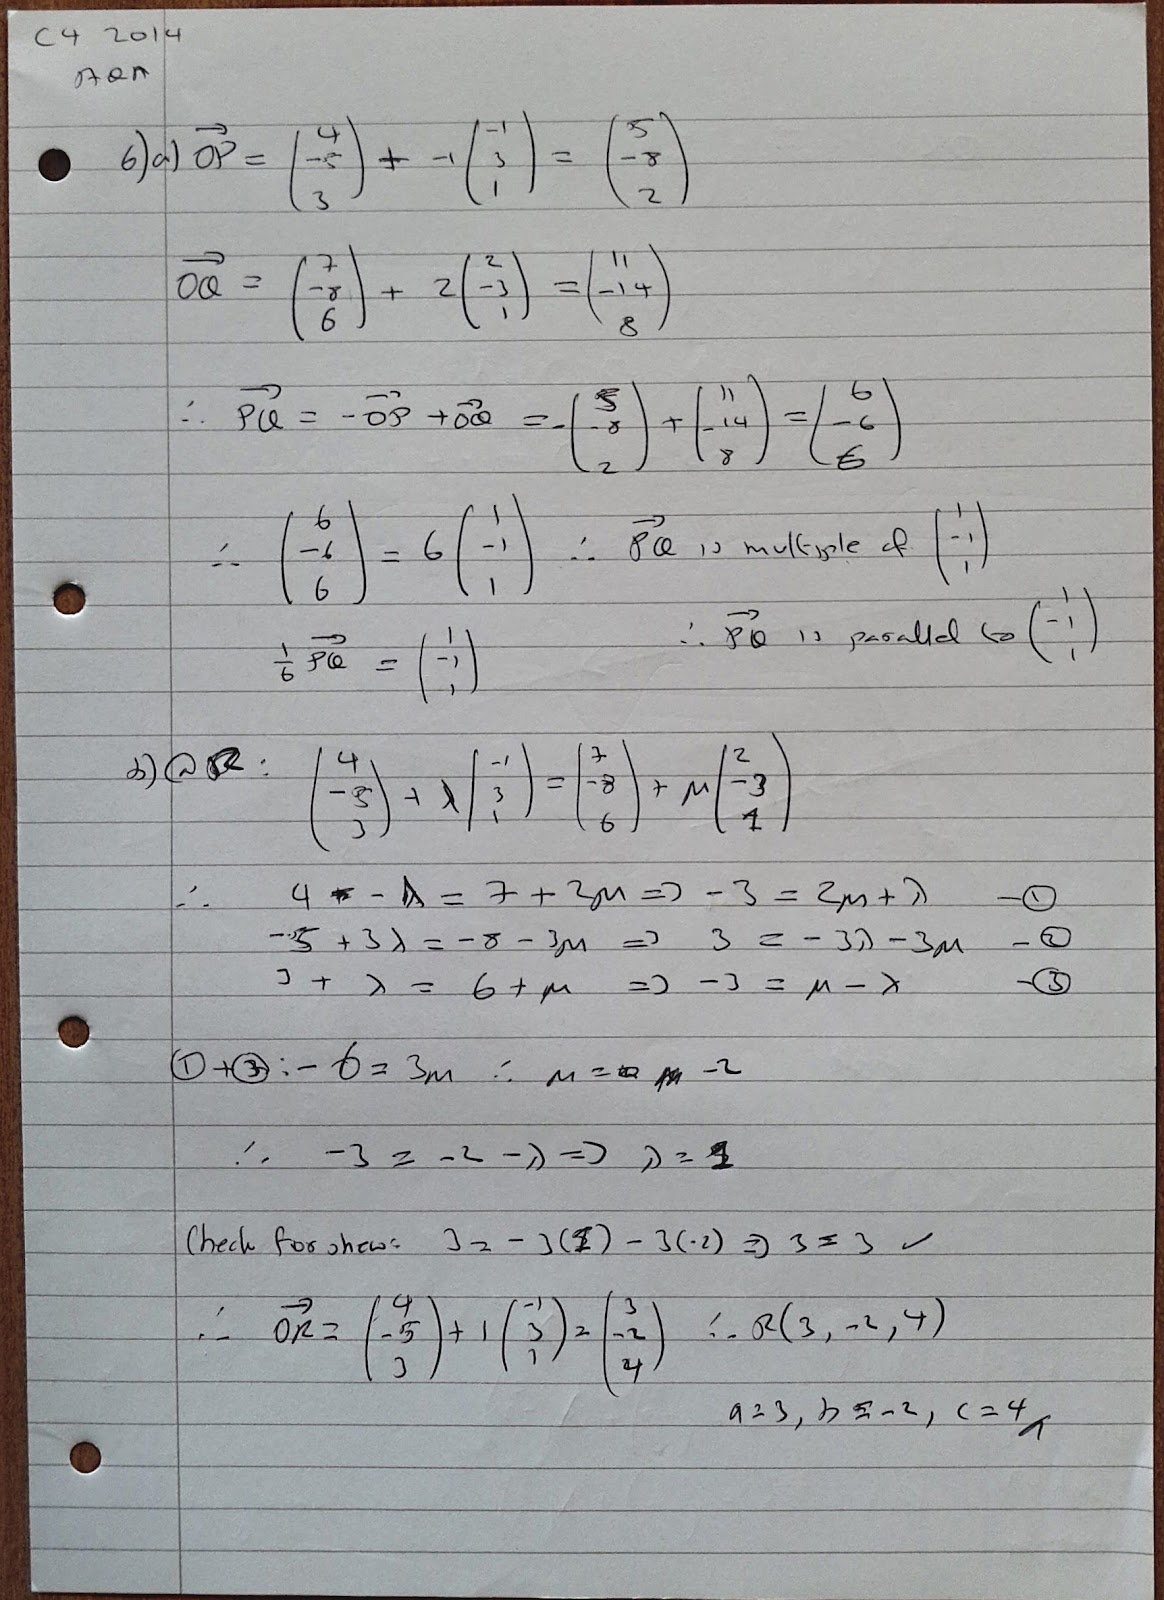 A Level Maths Notes: AQA Core 4 (C4) Summer 2014 Exam